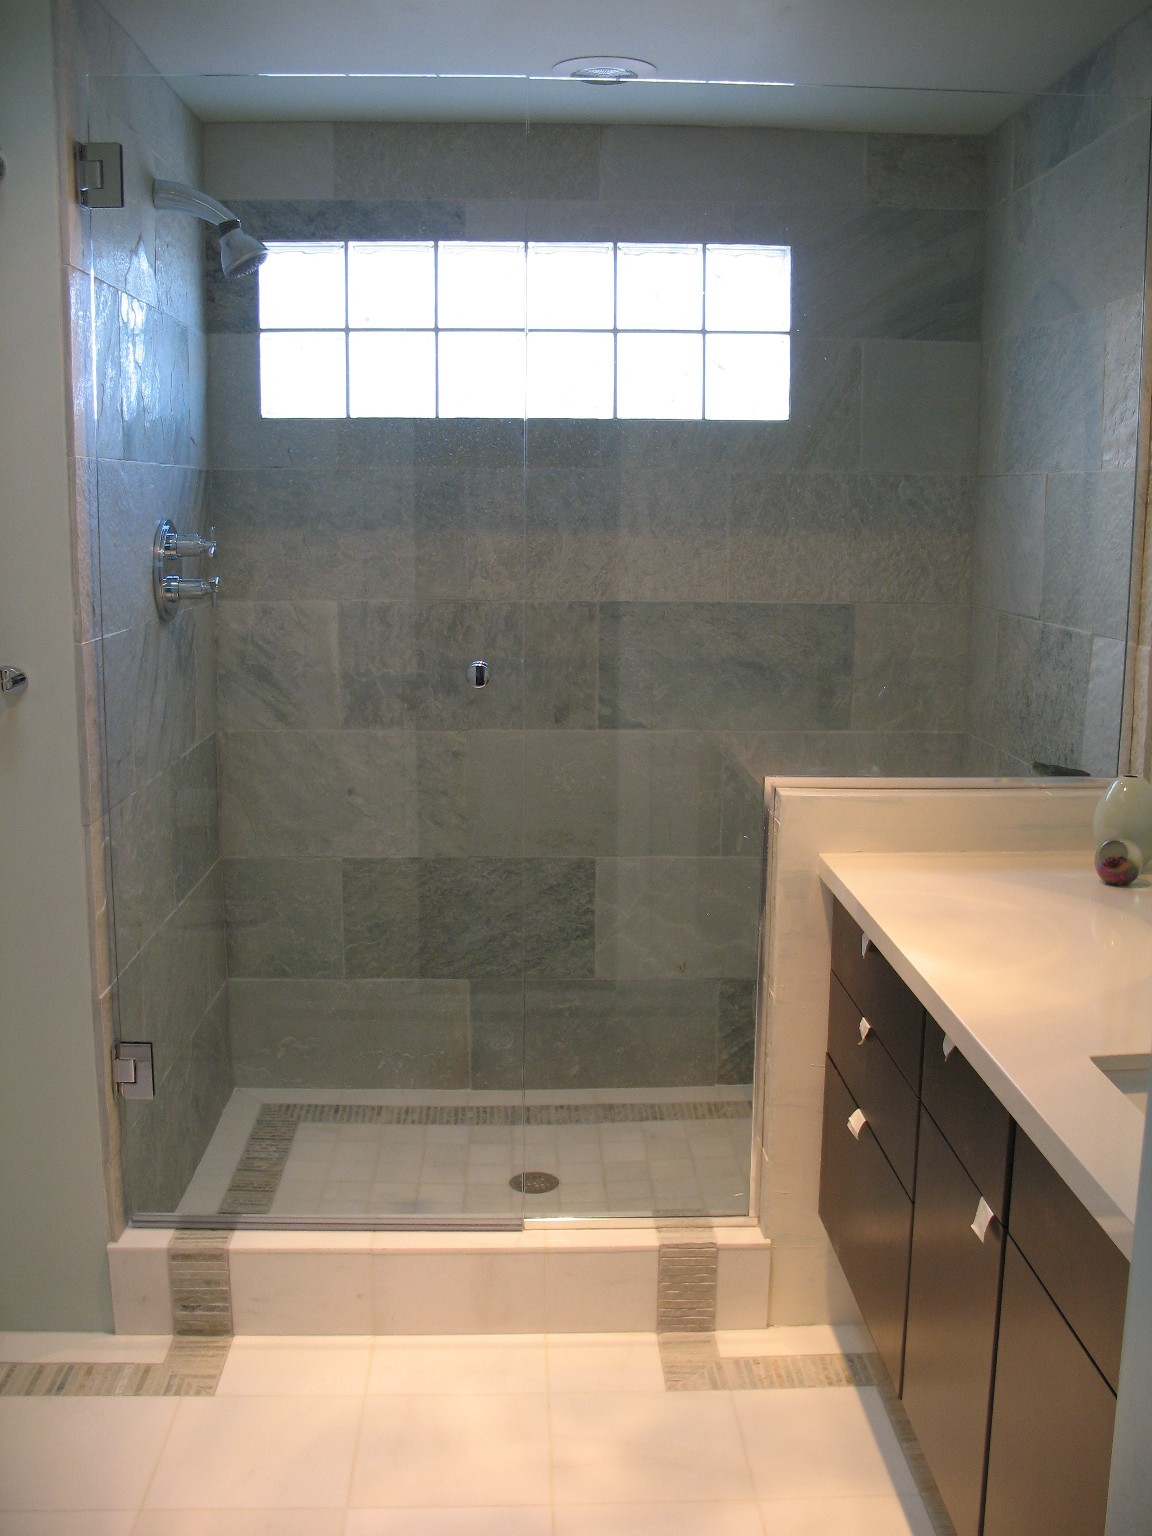 30 shower tile ideas on a budget for Bathroom tiles images gallery